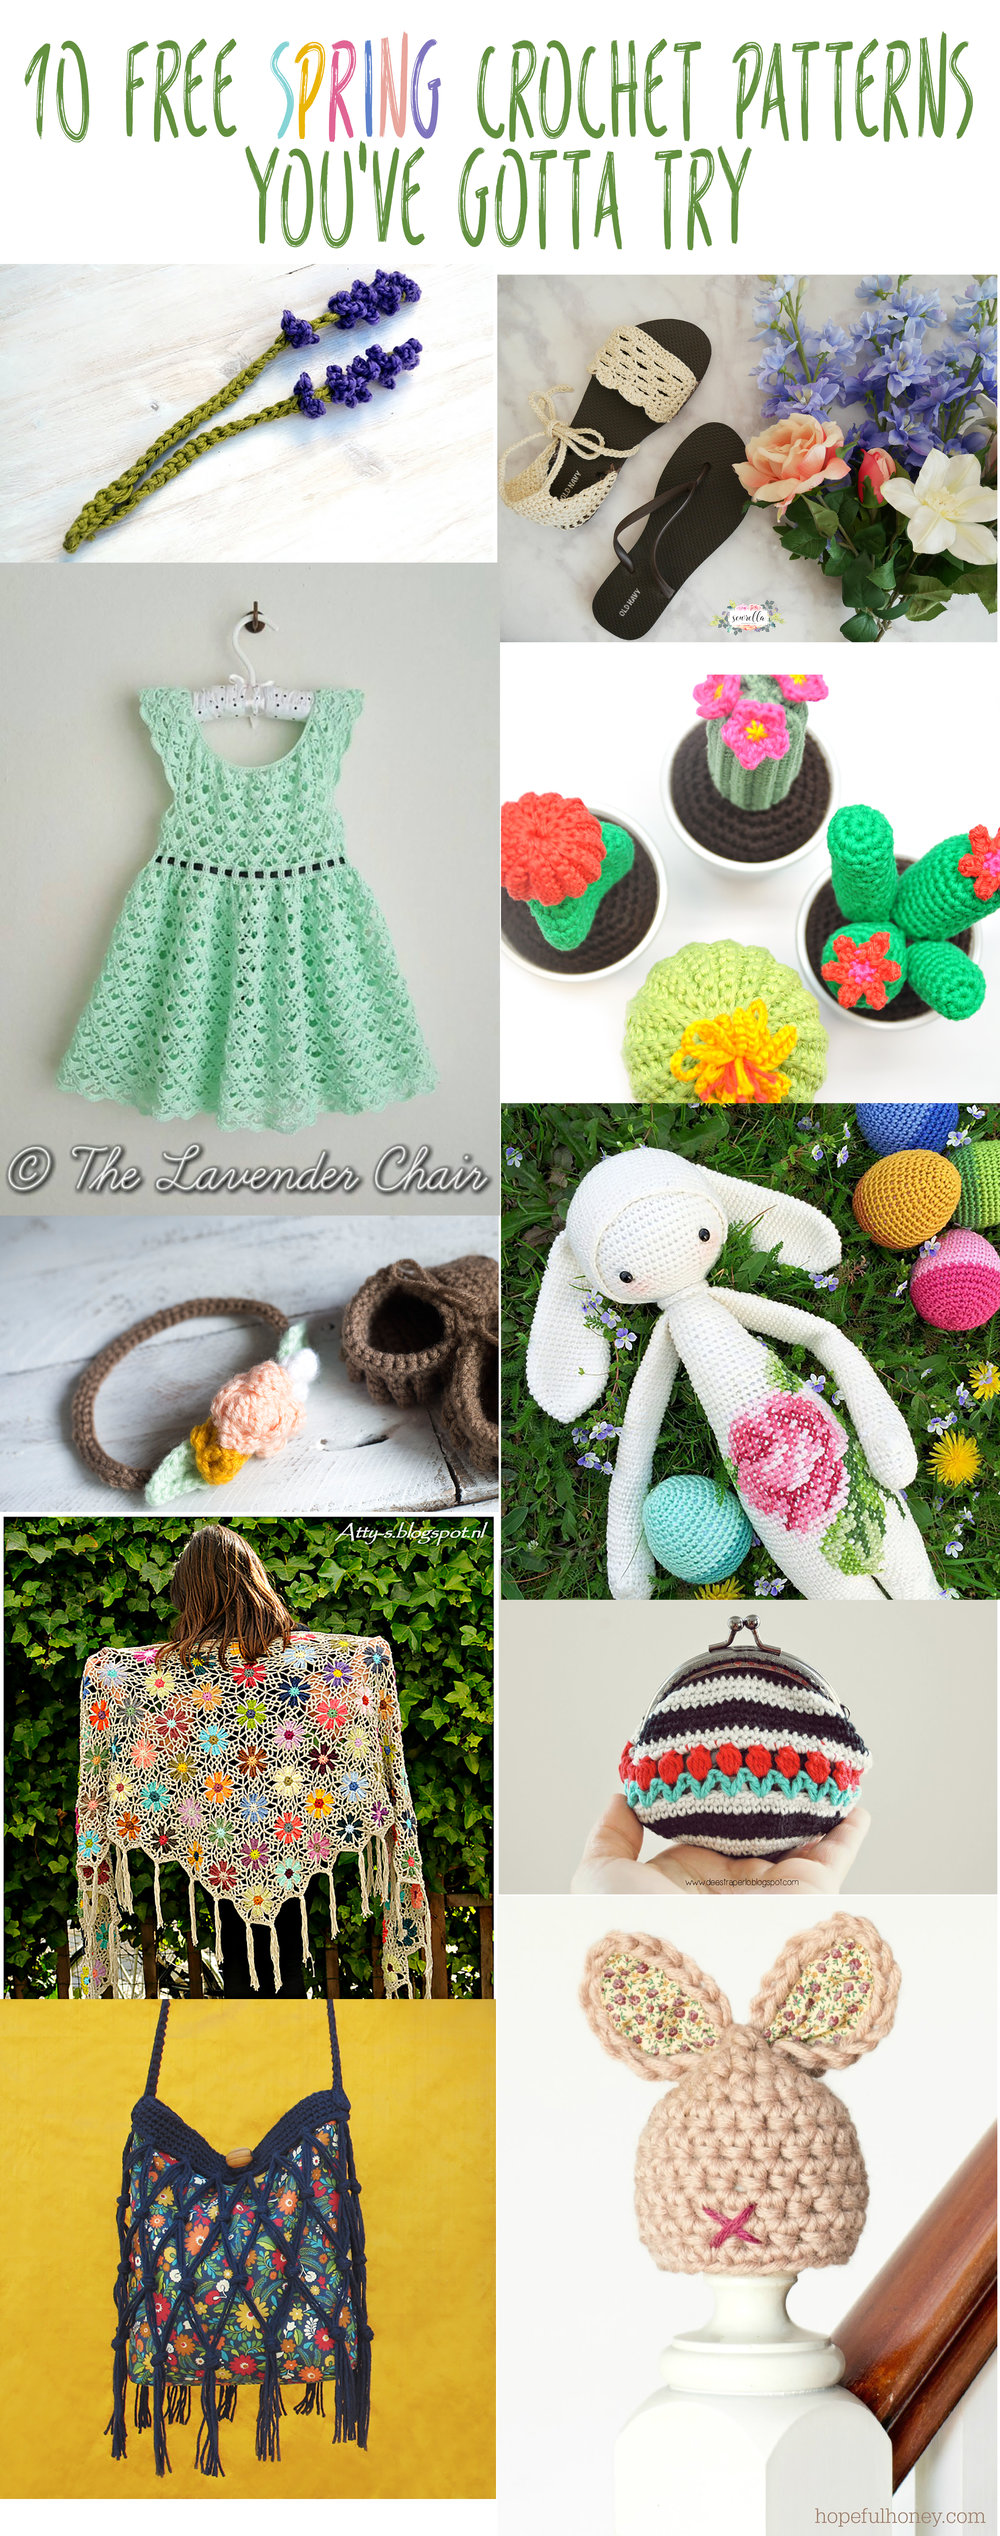 Ten Free Spring Crochet Patterns You\'ve Gotta Try — Megmade with Love